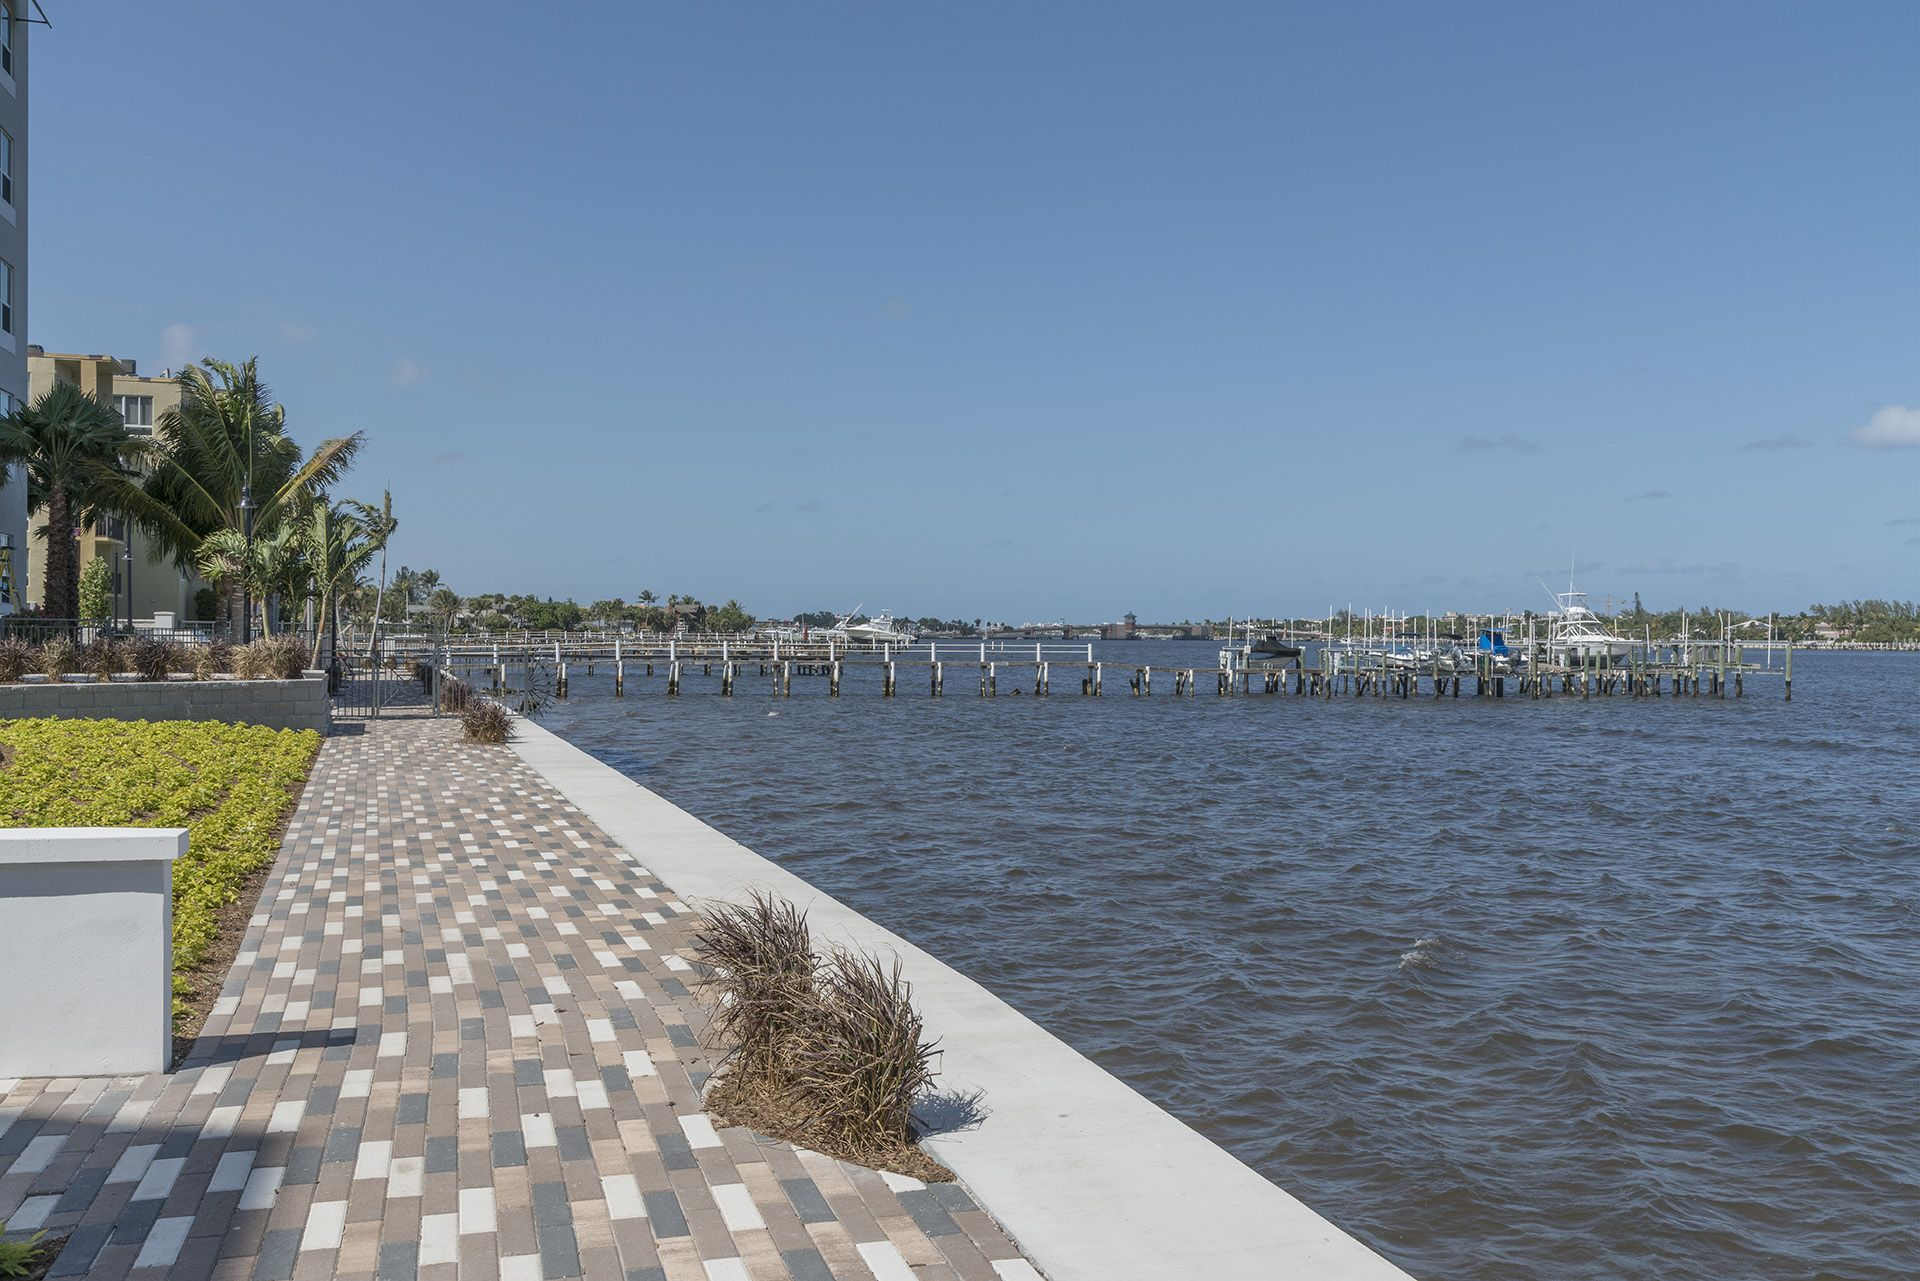 Walkway at the edge of the waterway with view of piers